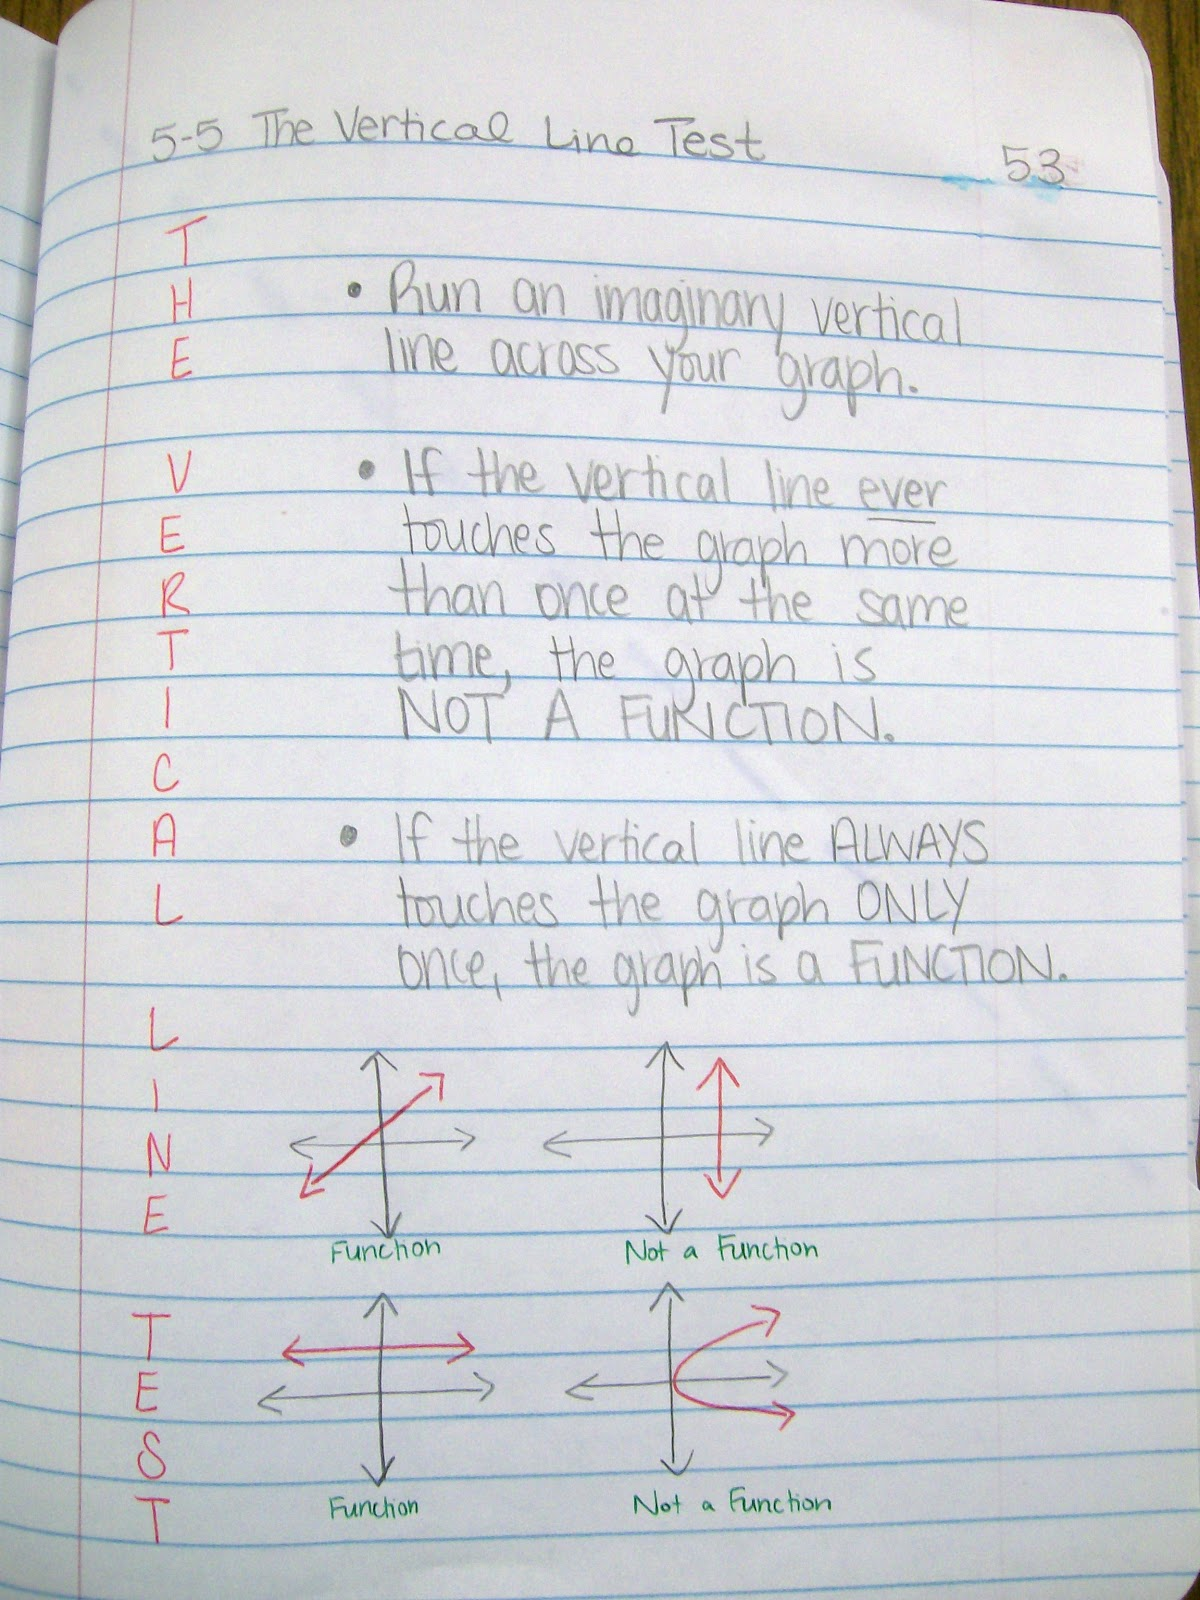 Math Love Algebra 1 Interactive Notebook Entries over Functions – Vertical Line Test Worksheet